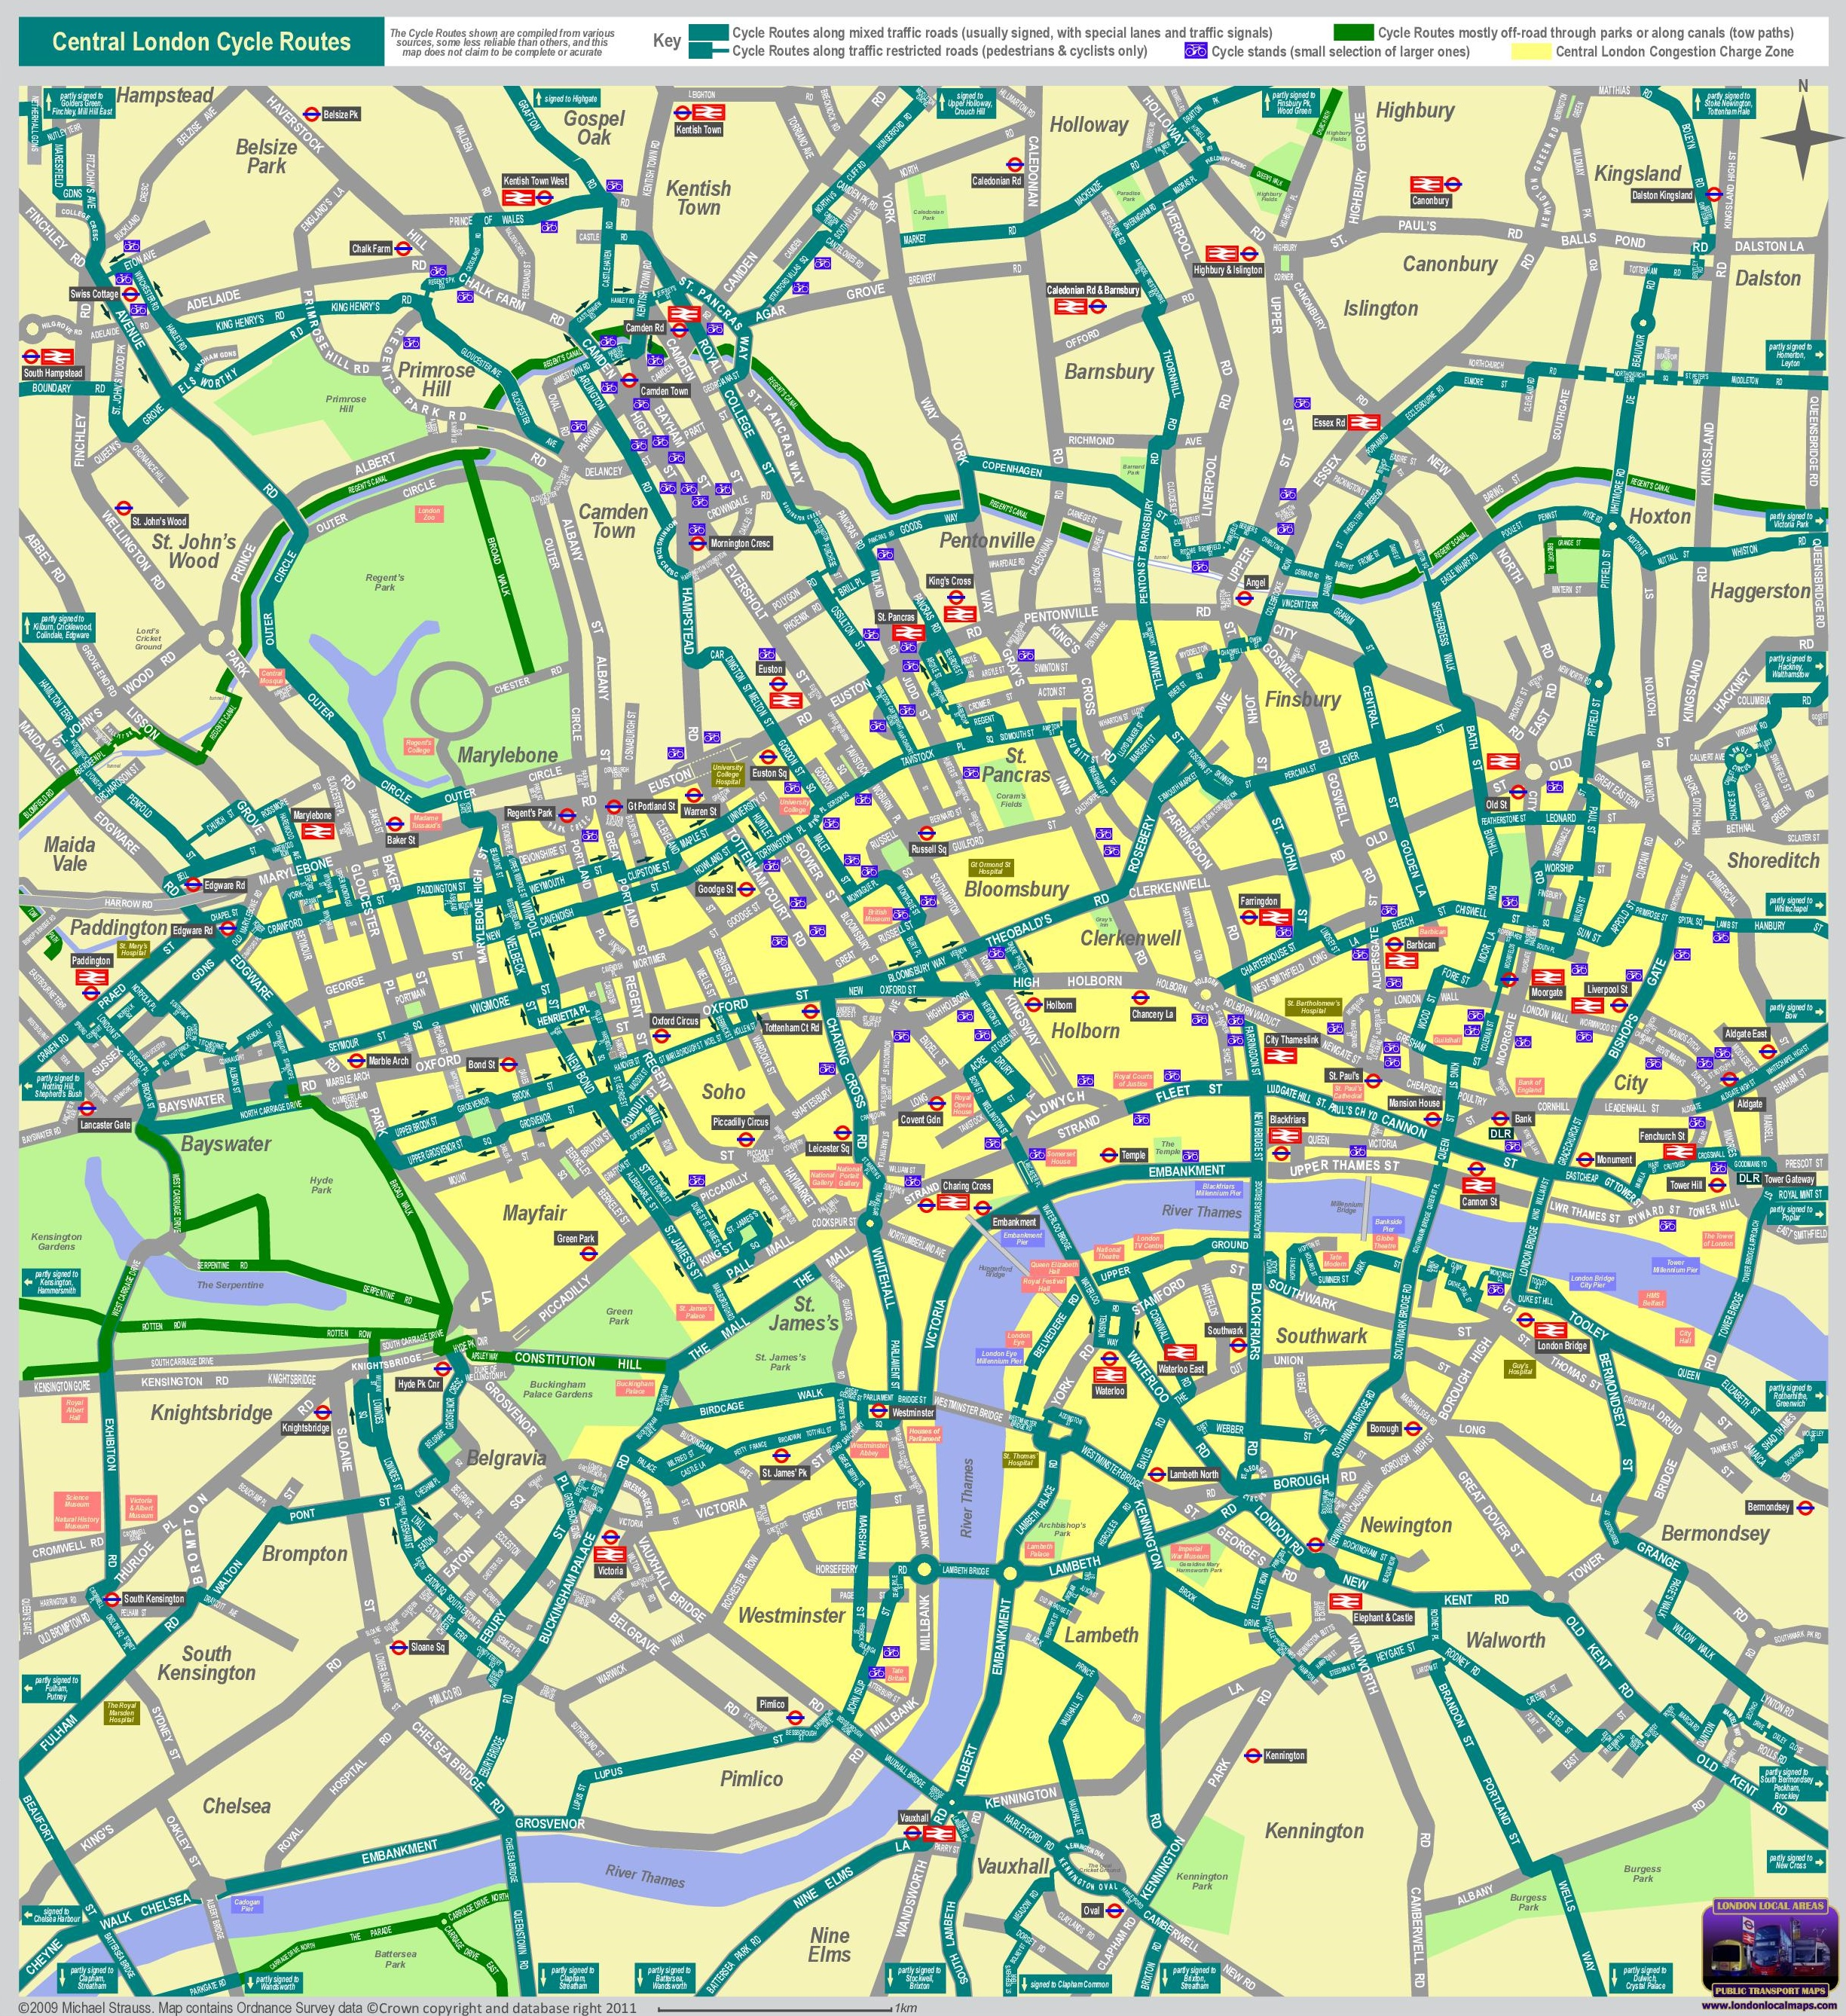 london central cycle routes map